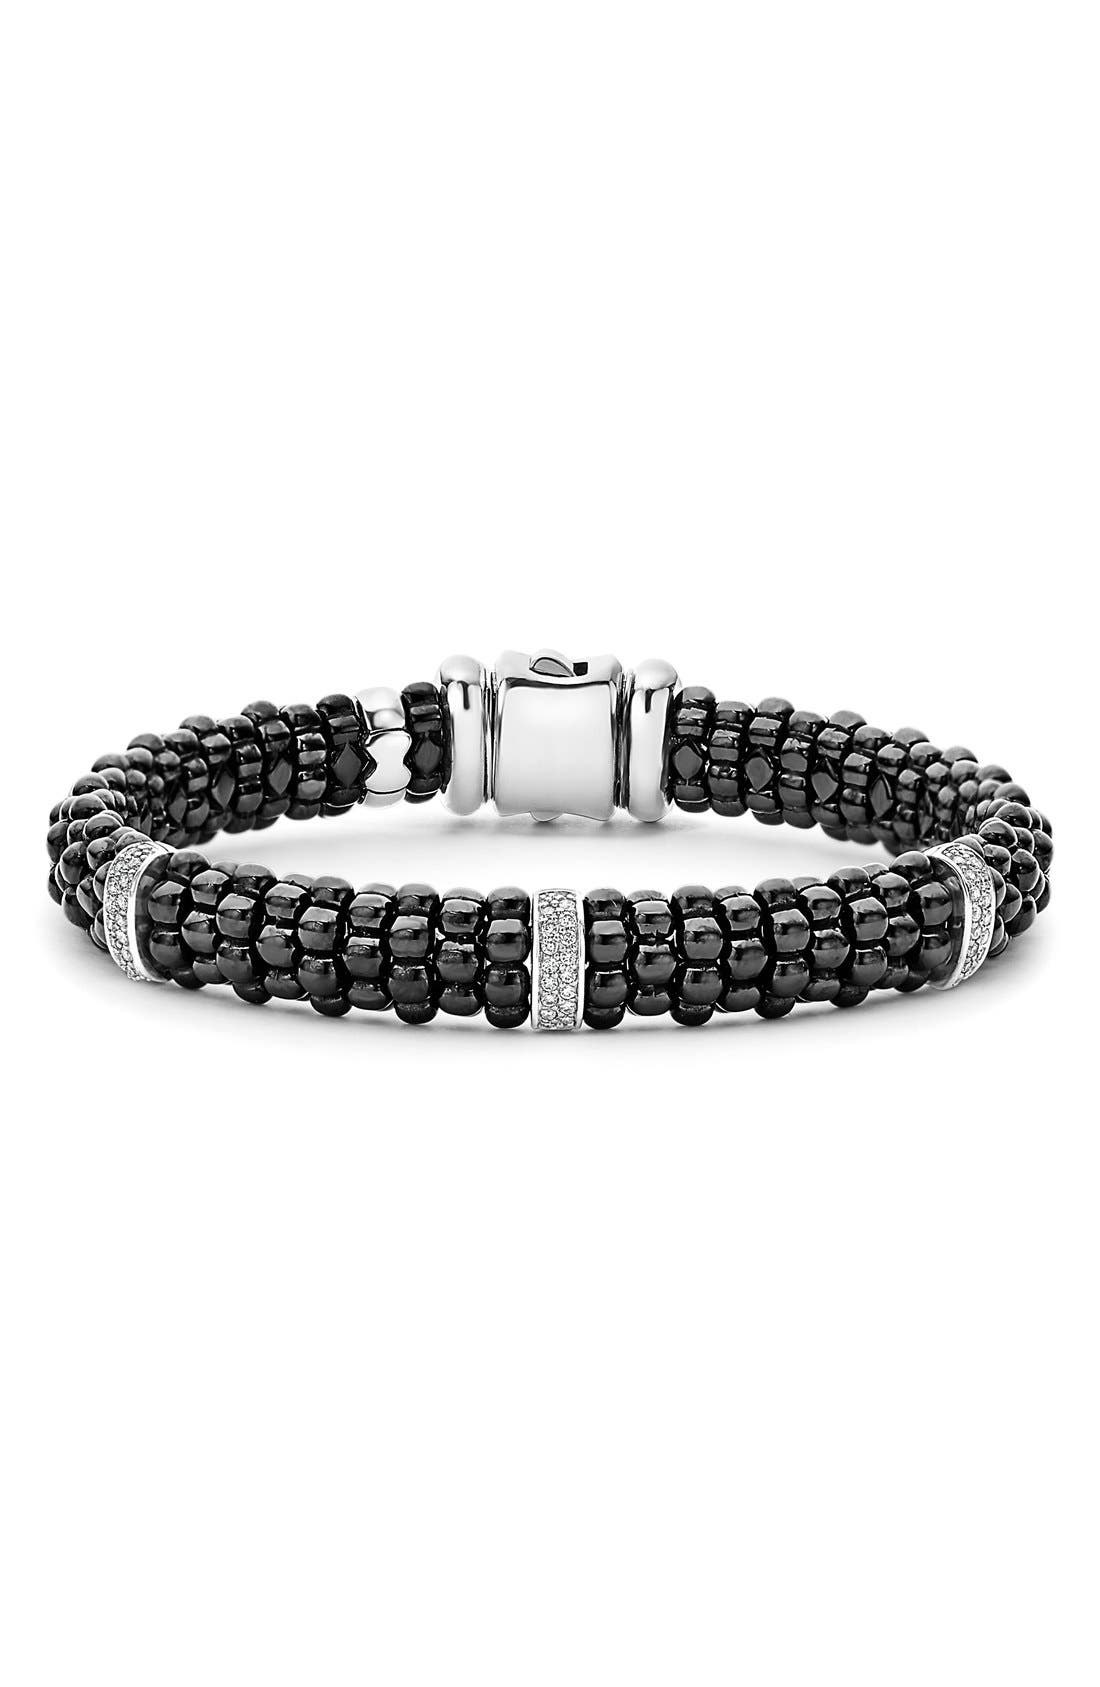 LAGOS Black Caviar Diamond Bracelet